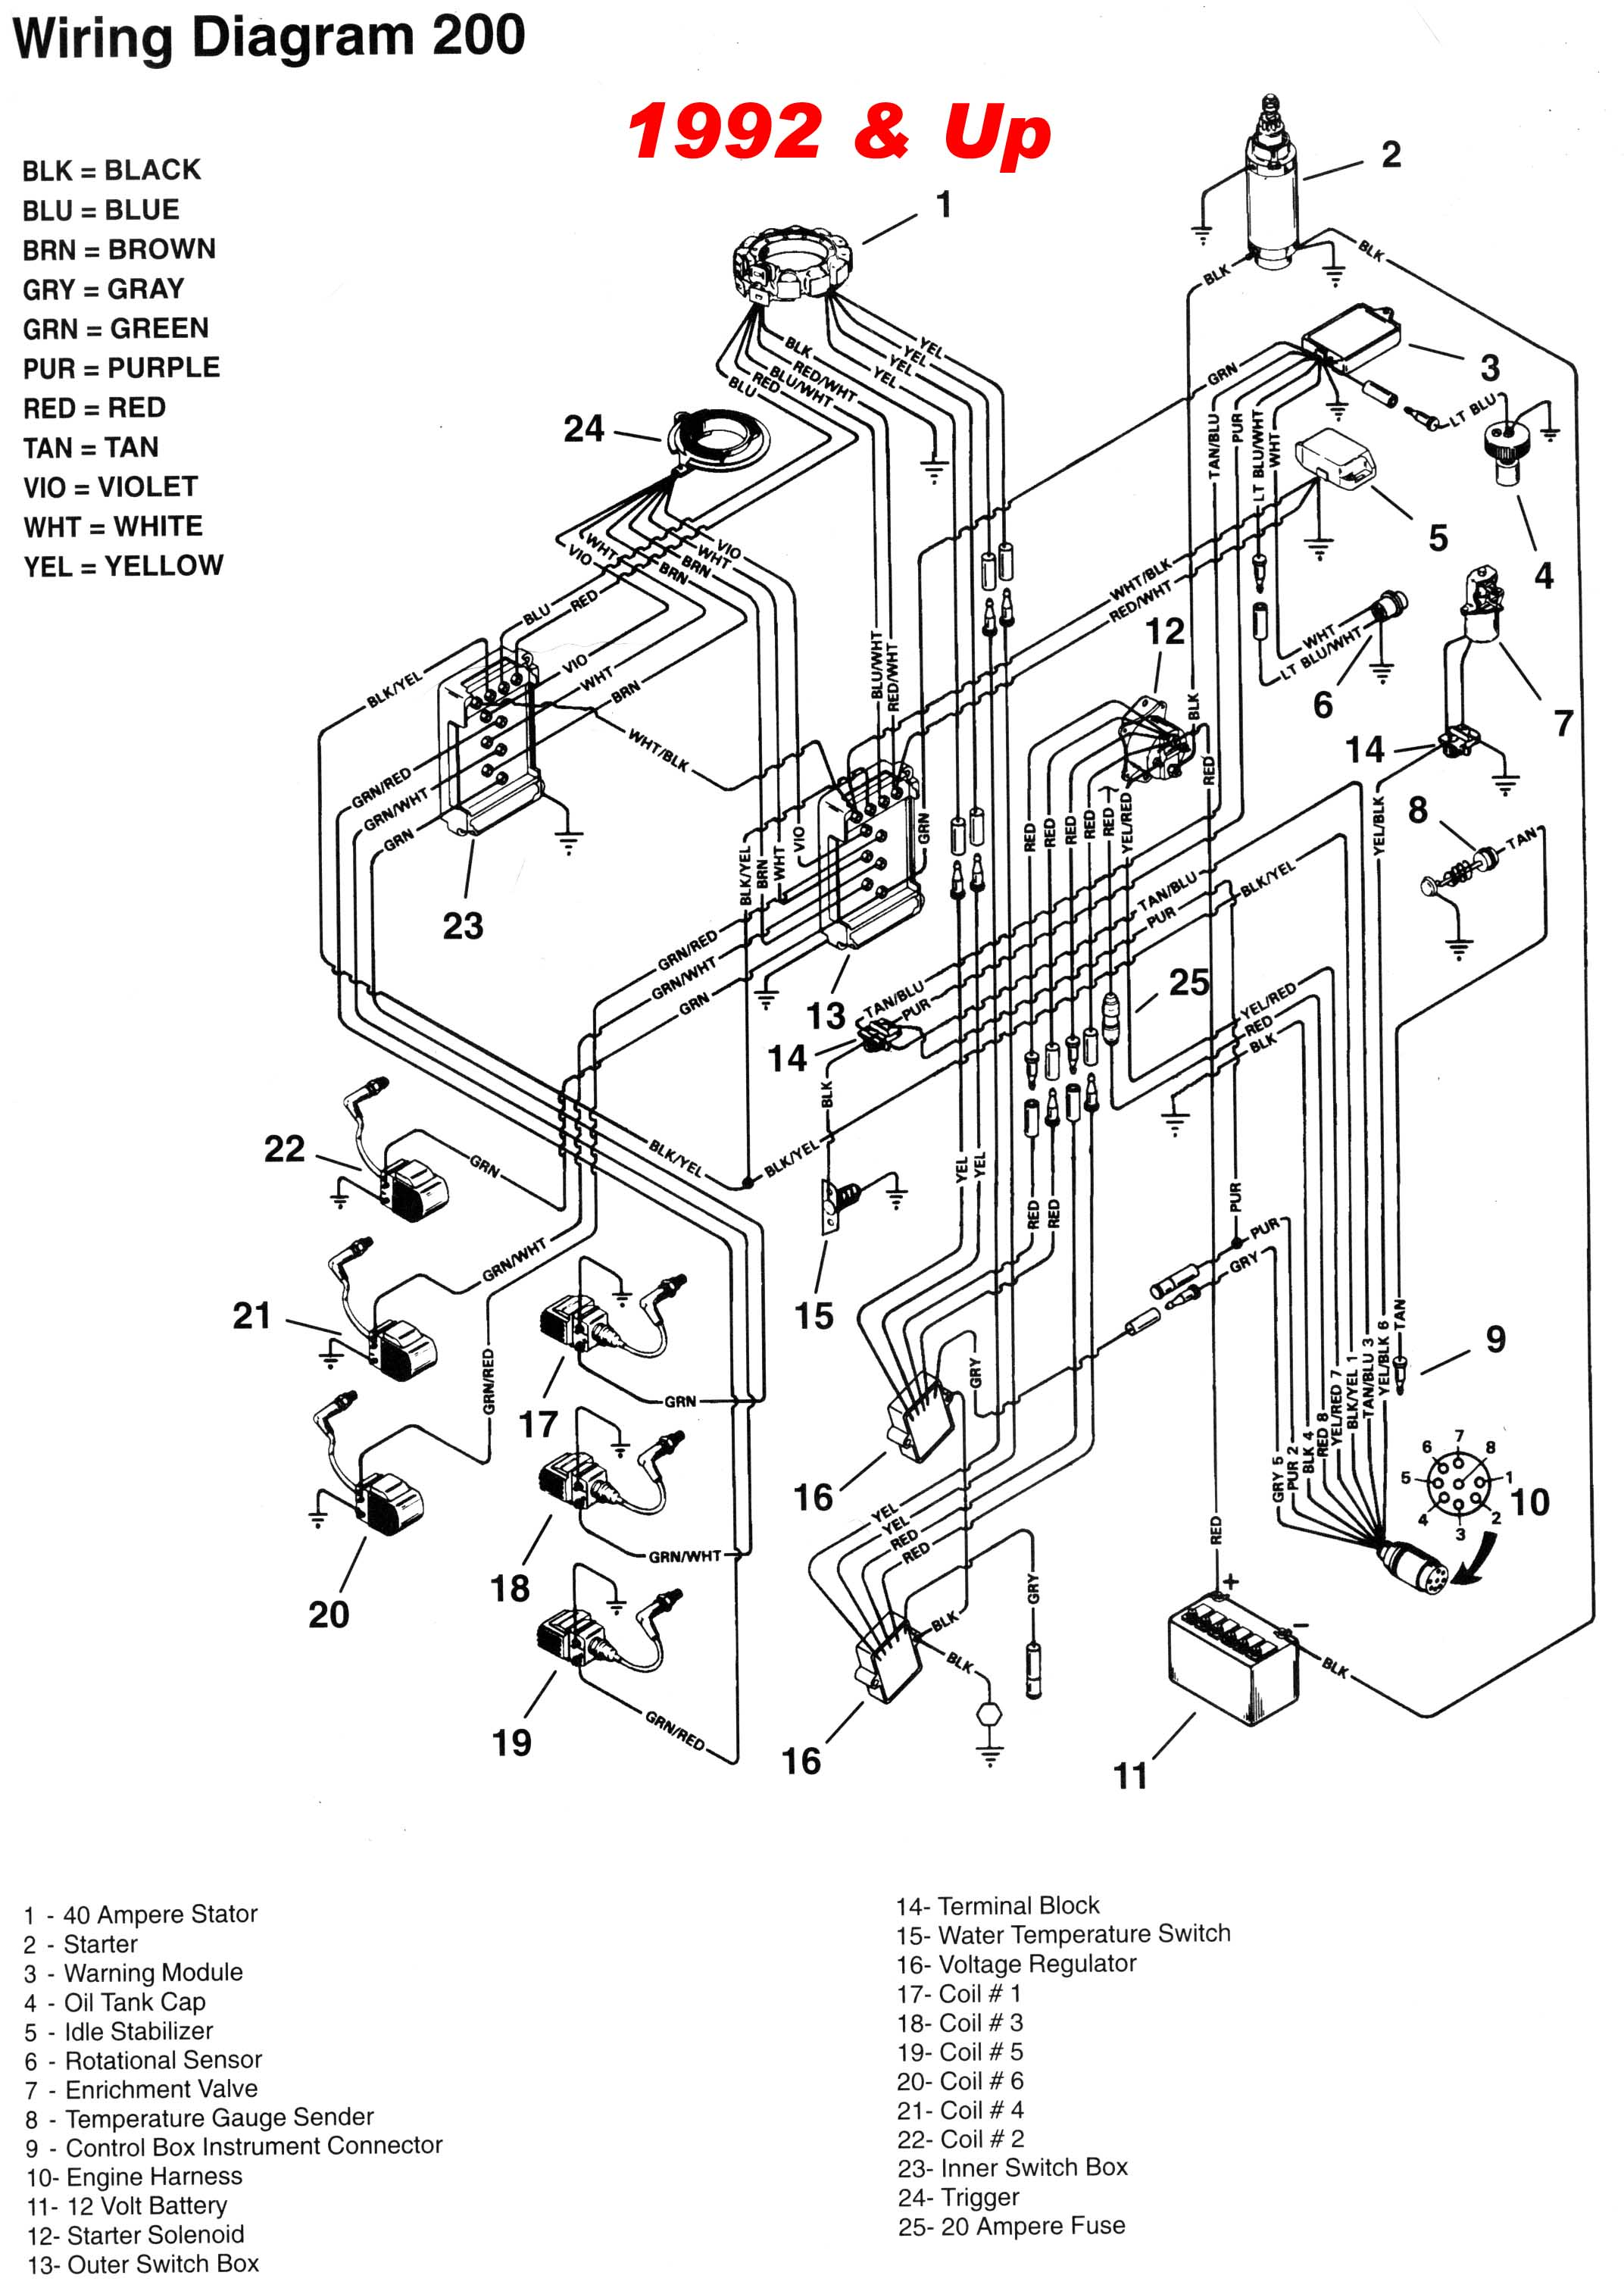 mercury_92up_200_wiring mercury cruiser outboard wiring diagram on mercury download outboard motor wiring harness at n-0.co